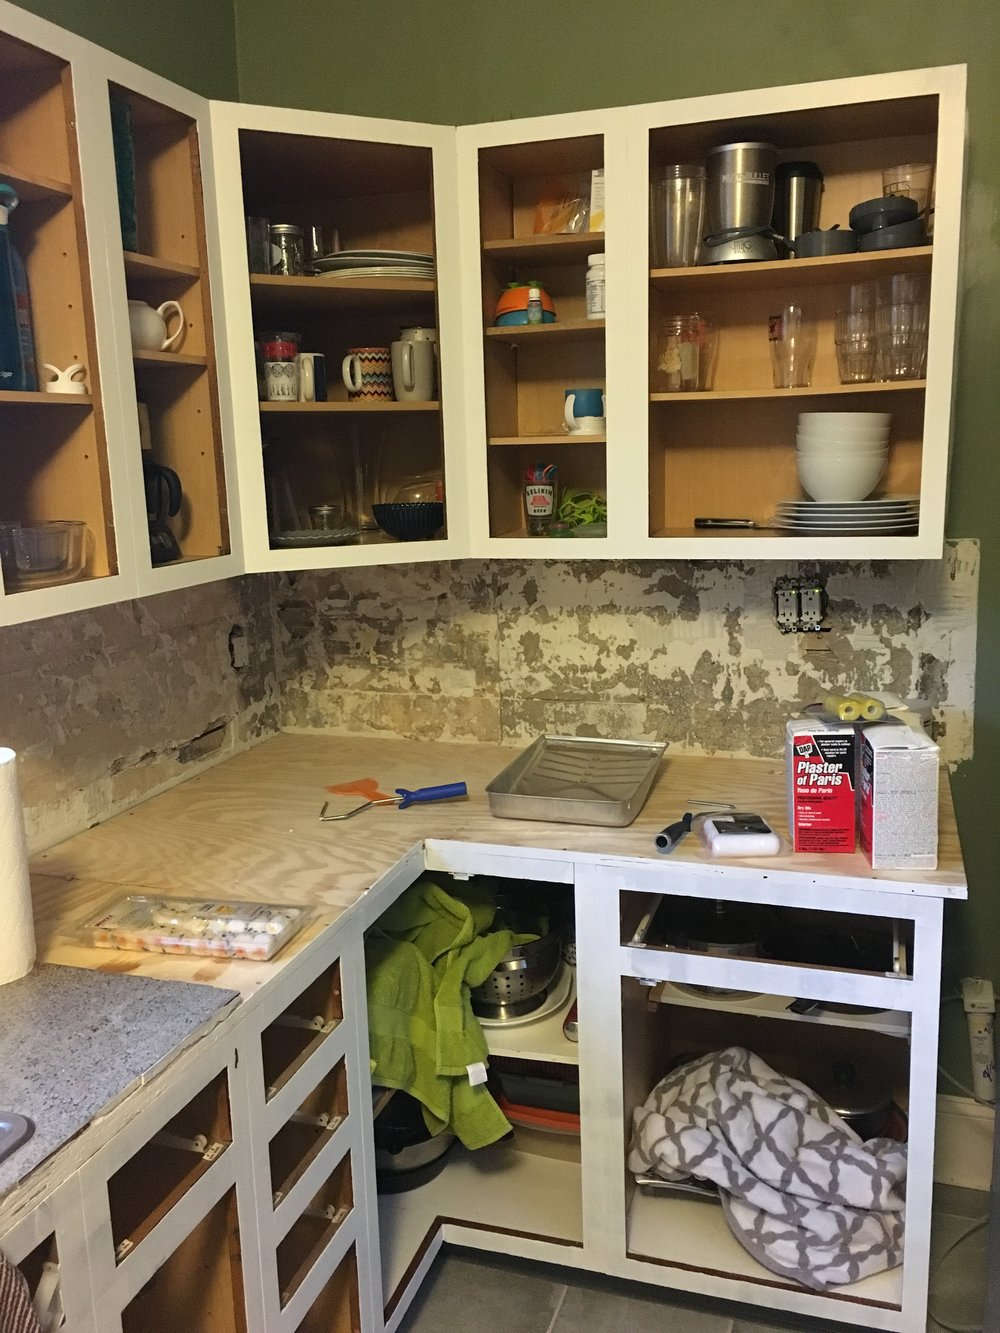 A coat of paint on the cabinet bases and Plaster of Paris for wall patching. A half-hearted attempt to protect the dishes with towels.